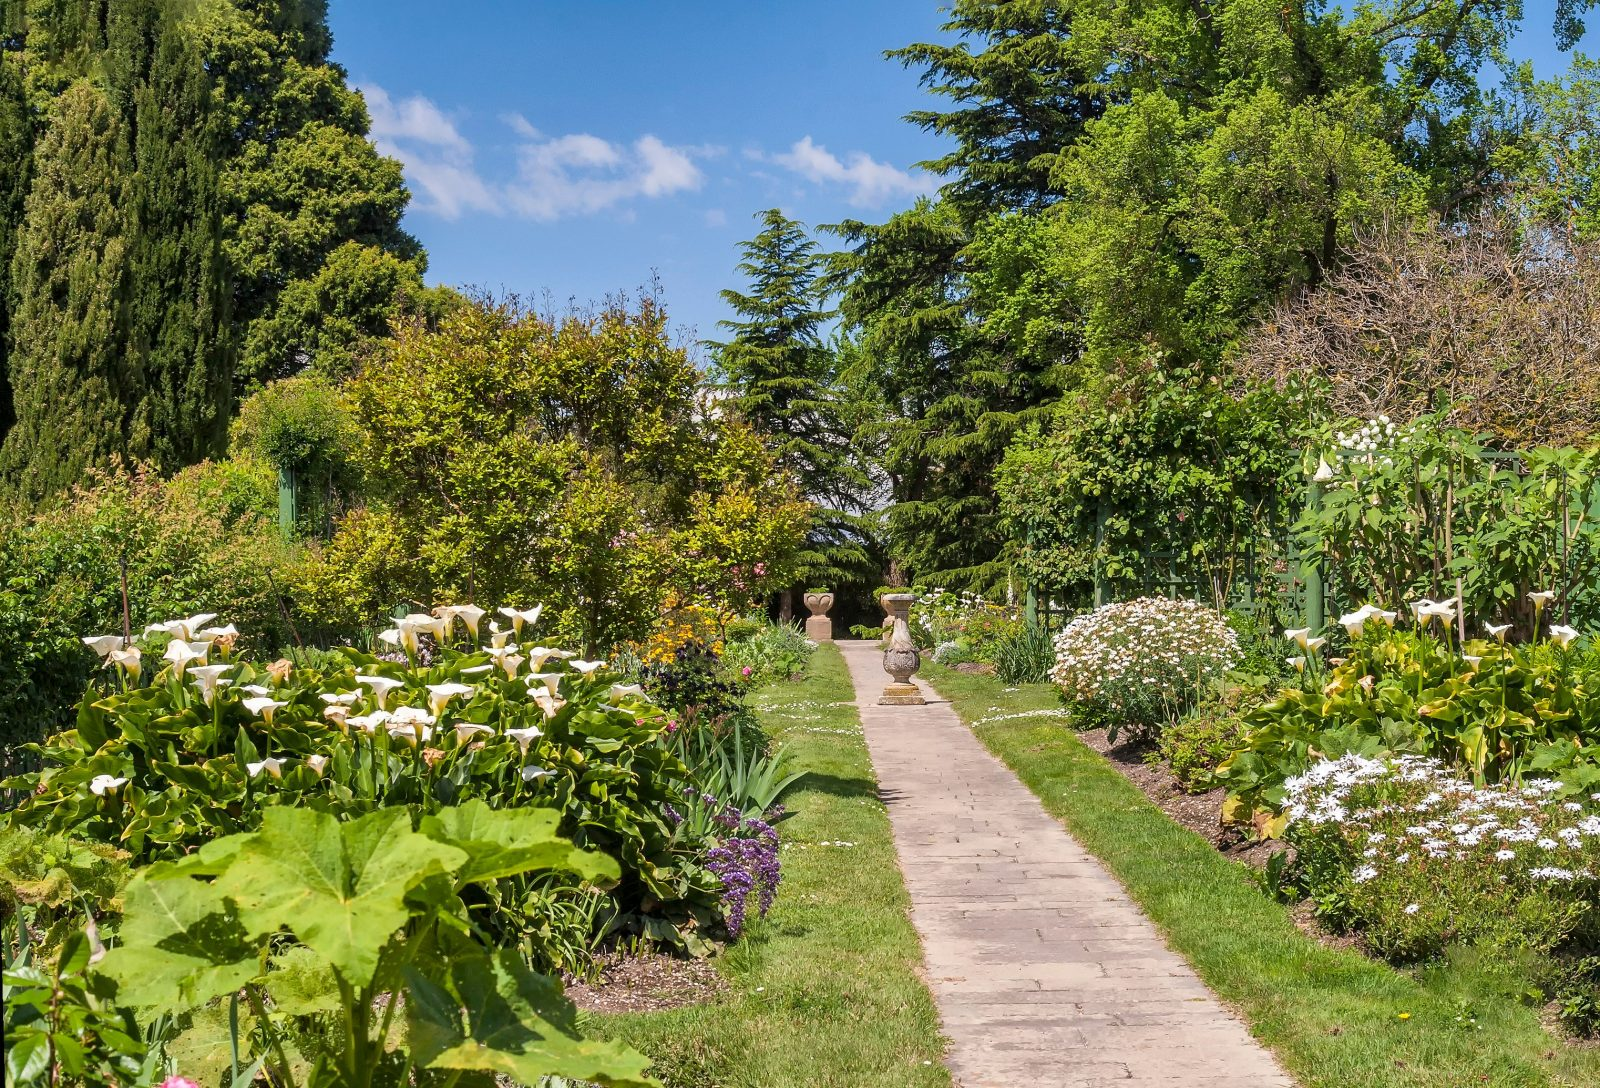 Gardens at Coombe